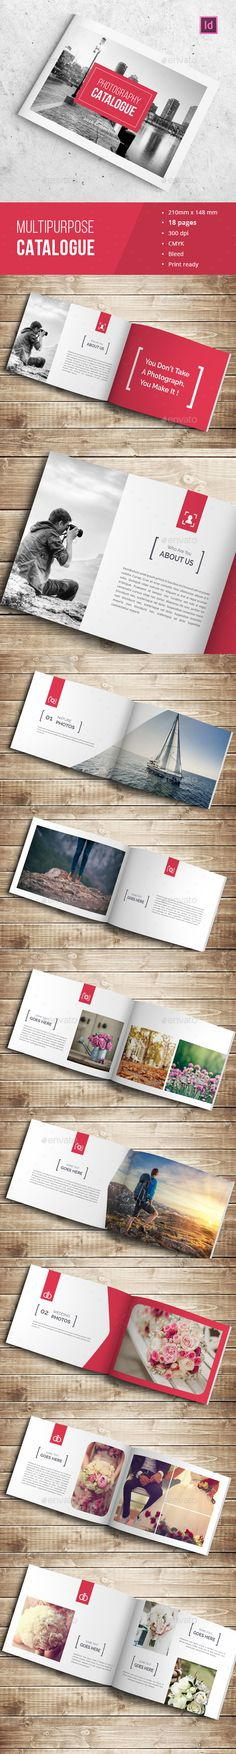 Photographer Portfolio Catalogue Template InDesign INDD. Download here…